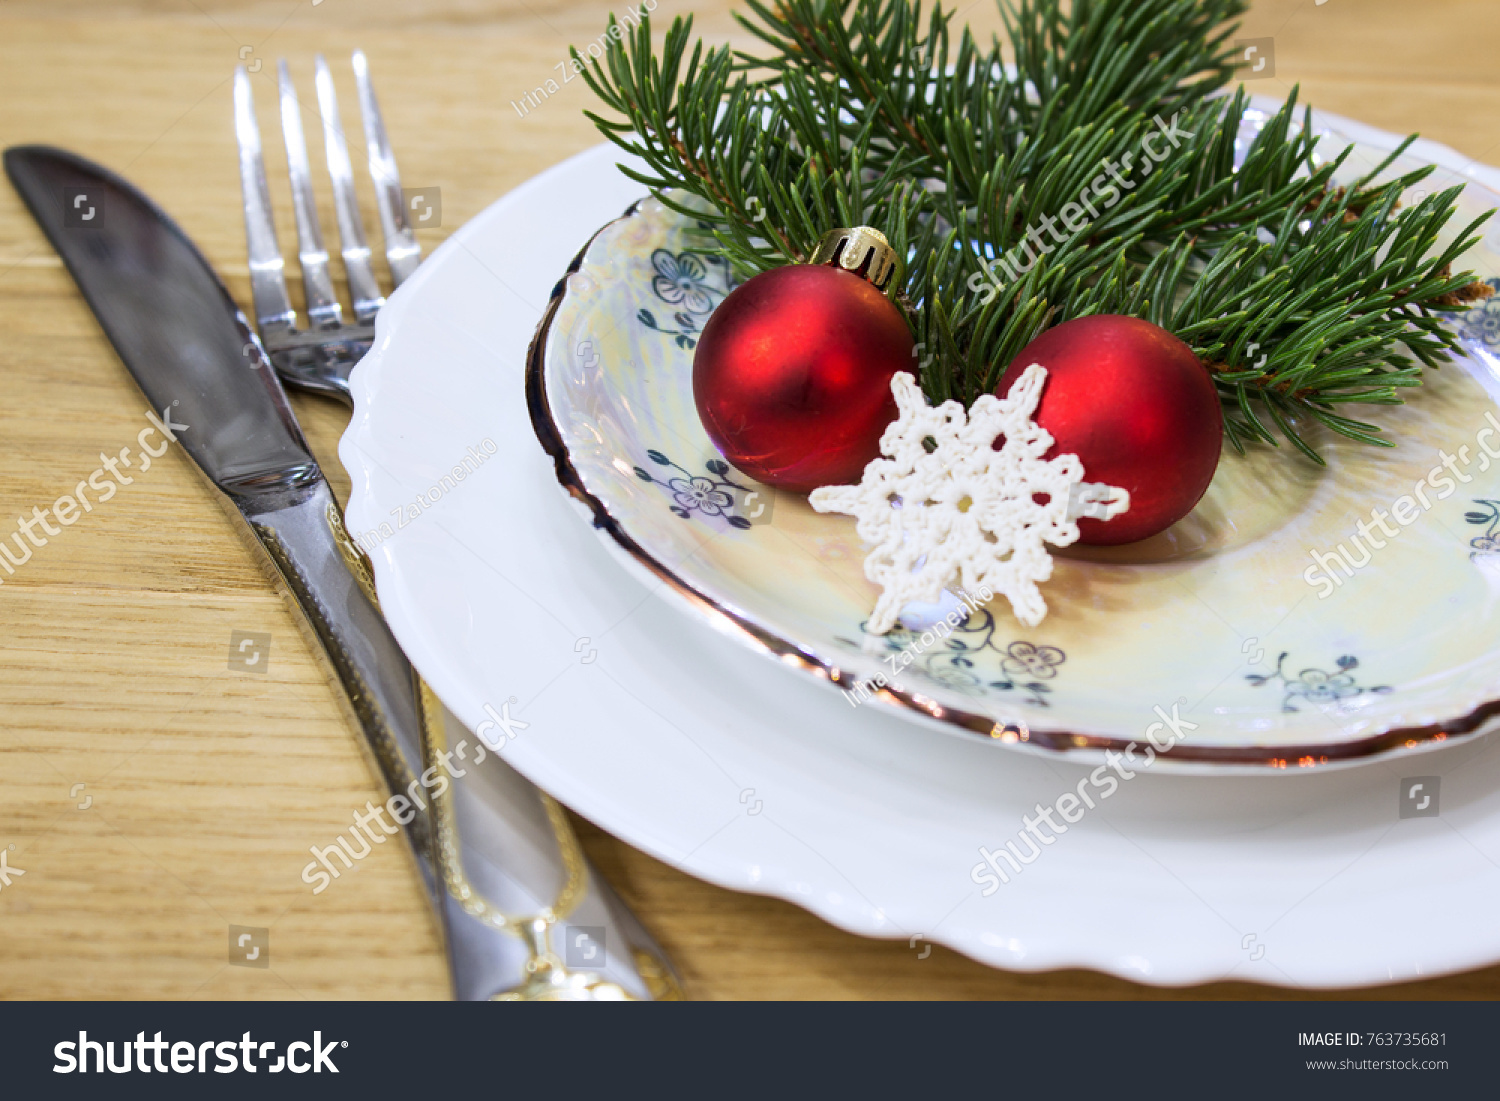 Festive Table Christmas Decorations Plates Festive Stock Photo Edit Now 763735681